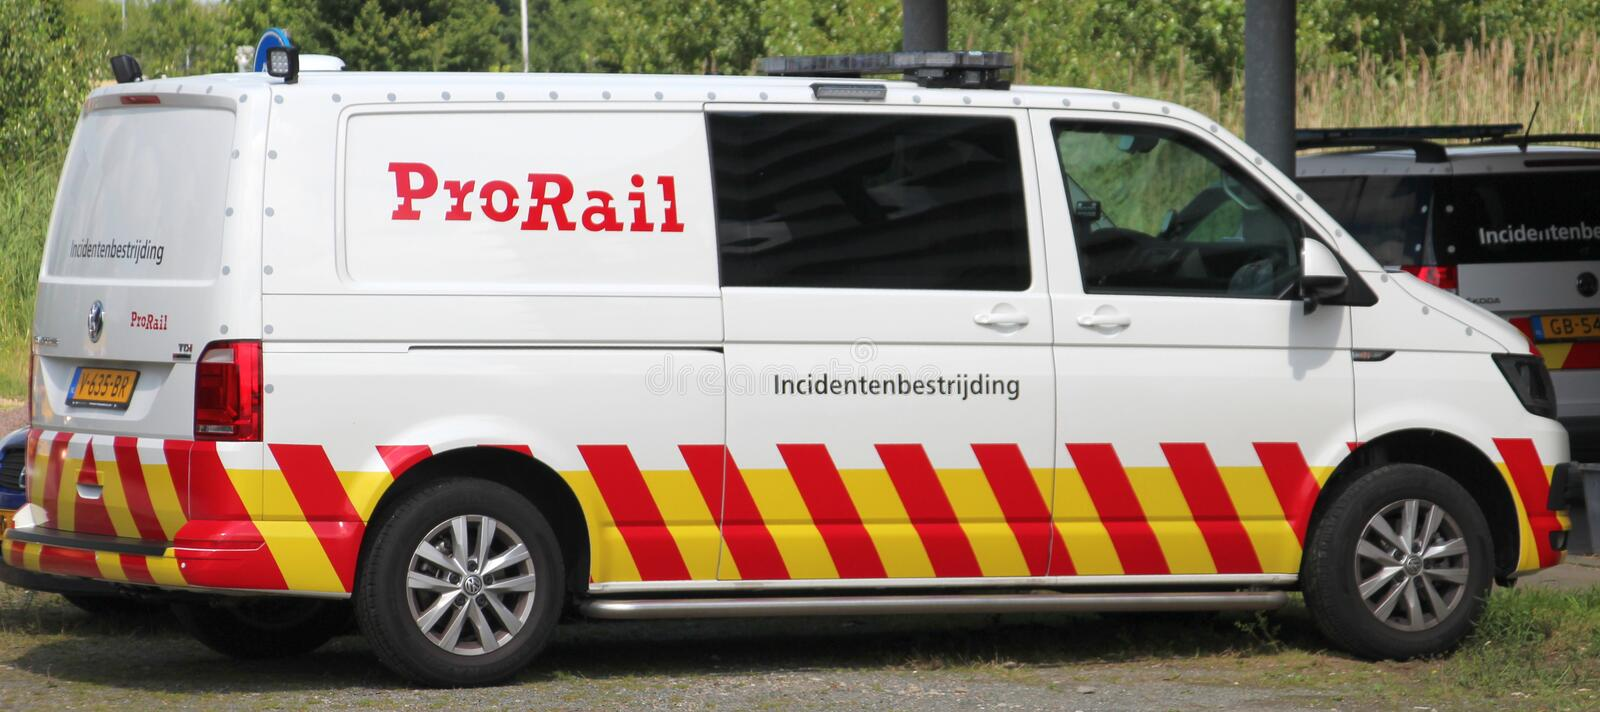 Railway incident vehicle of ProRail organization in the Netherlands. stock image